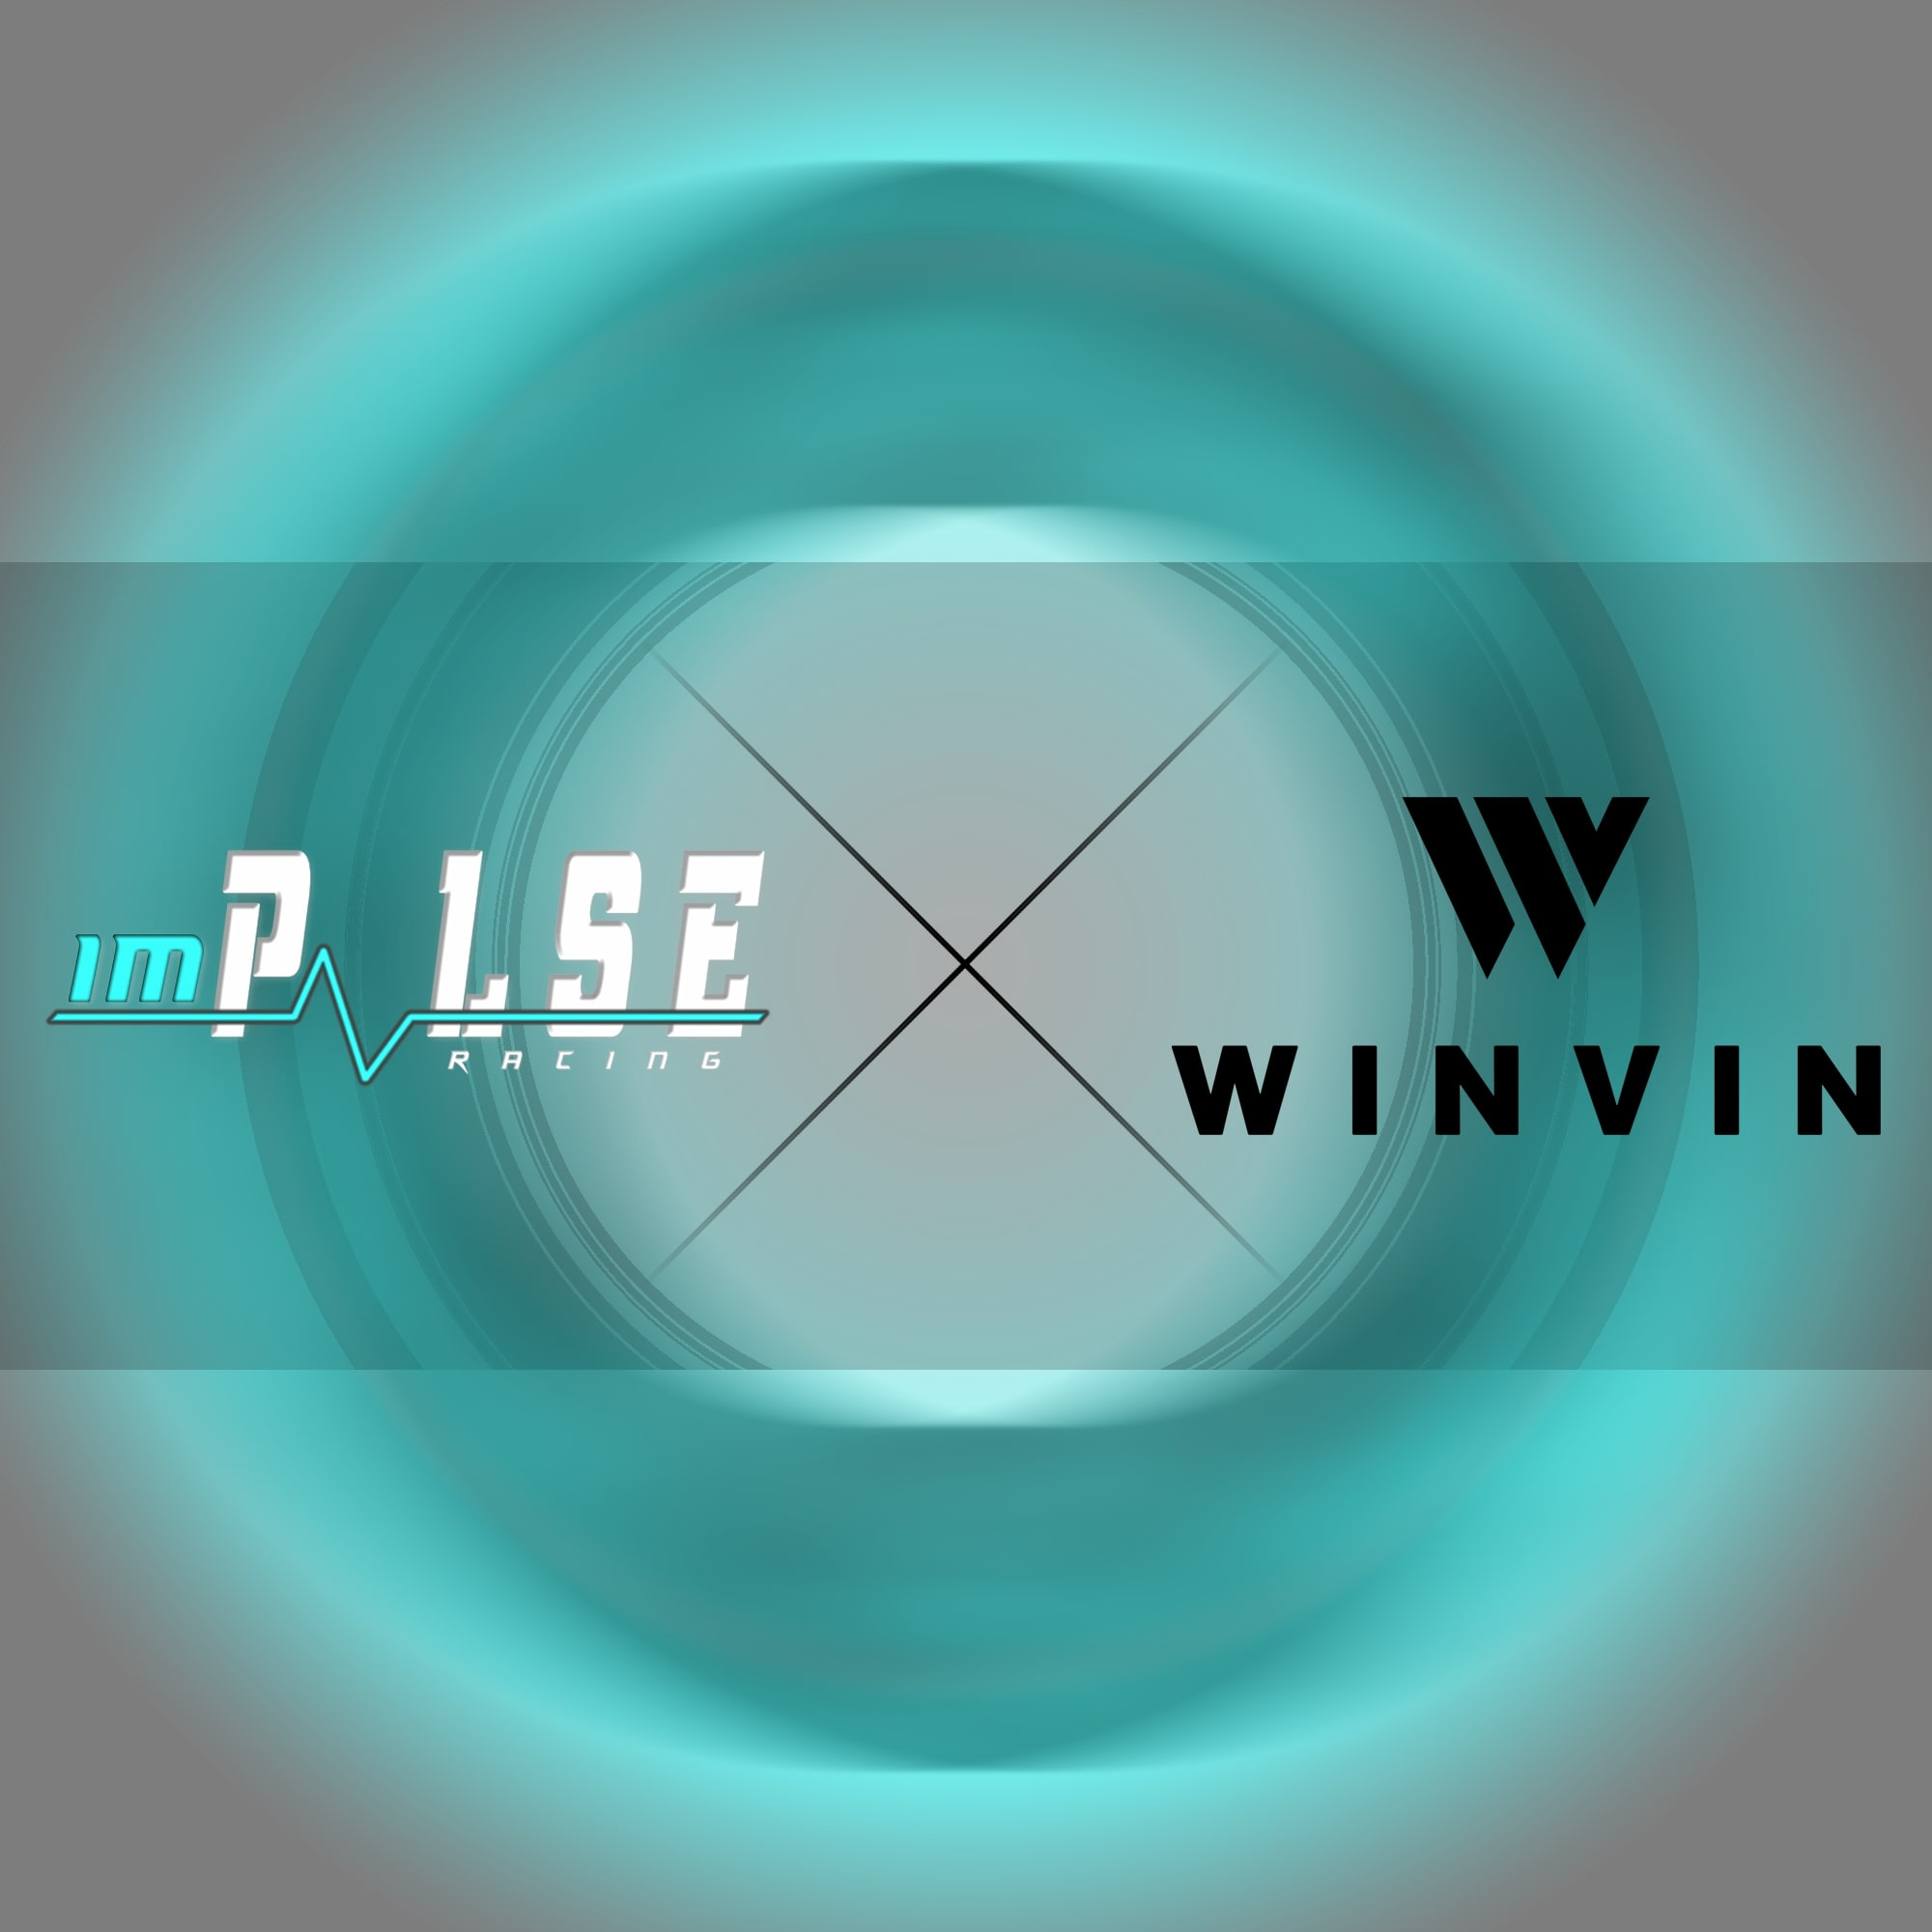 New Partner Winvin